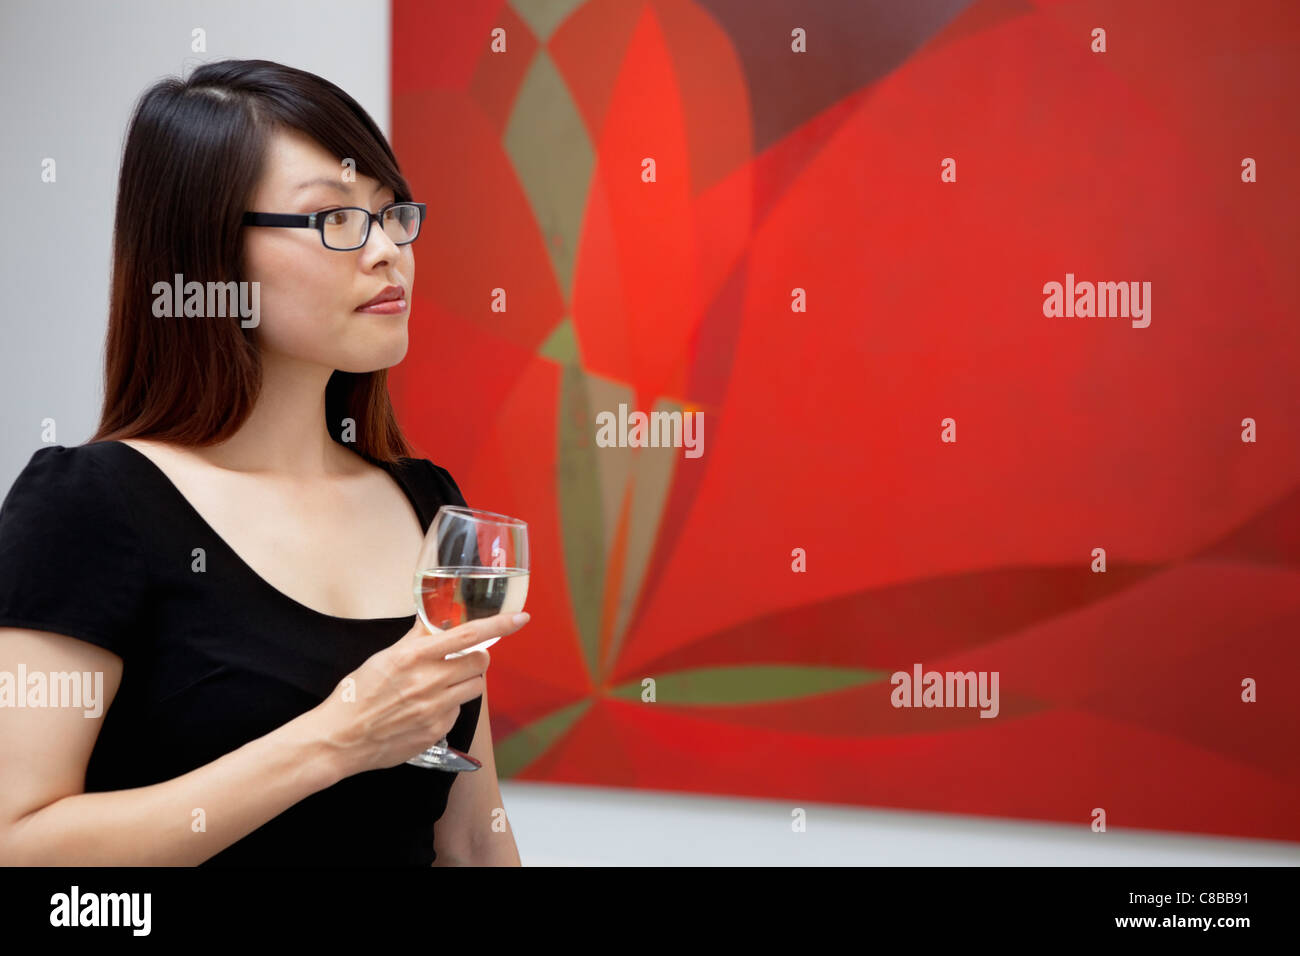 Young woman looking at wall paintings in art gallery - Stock Image